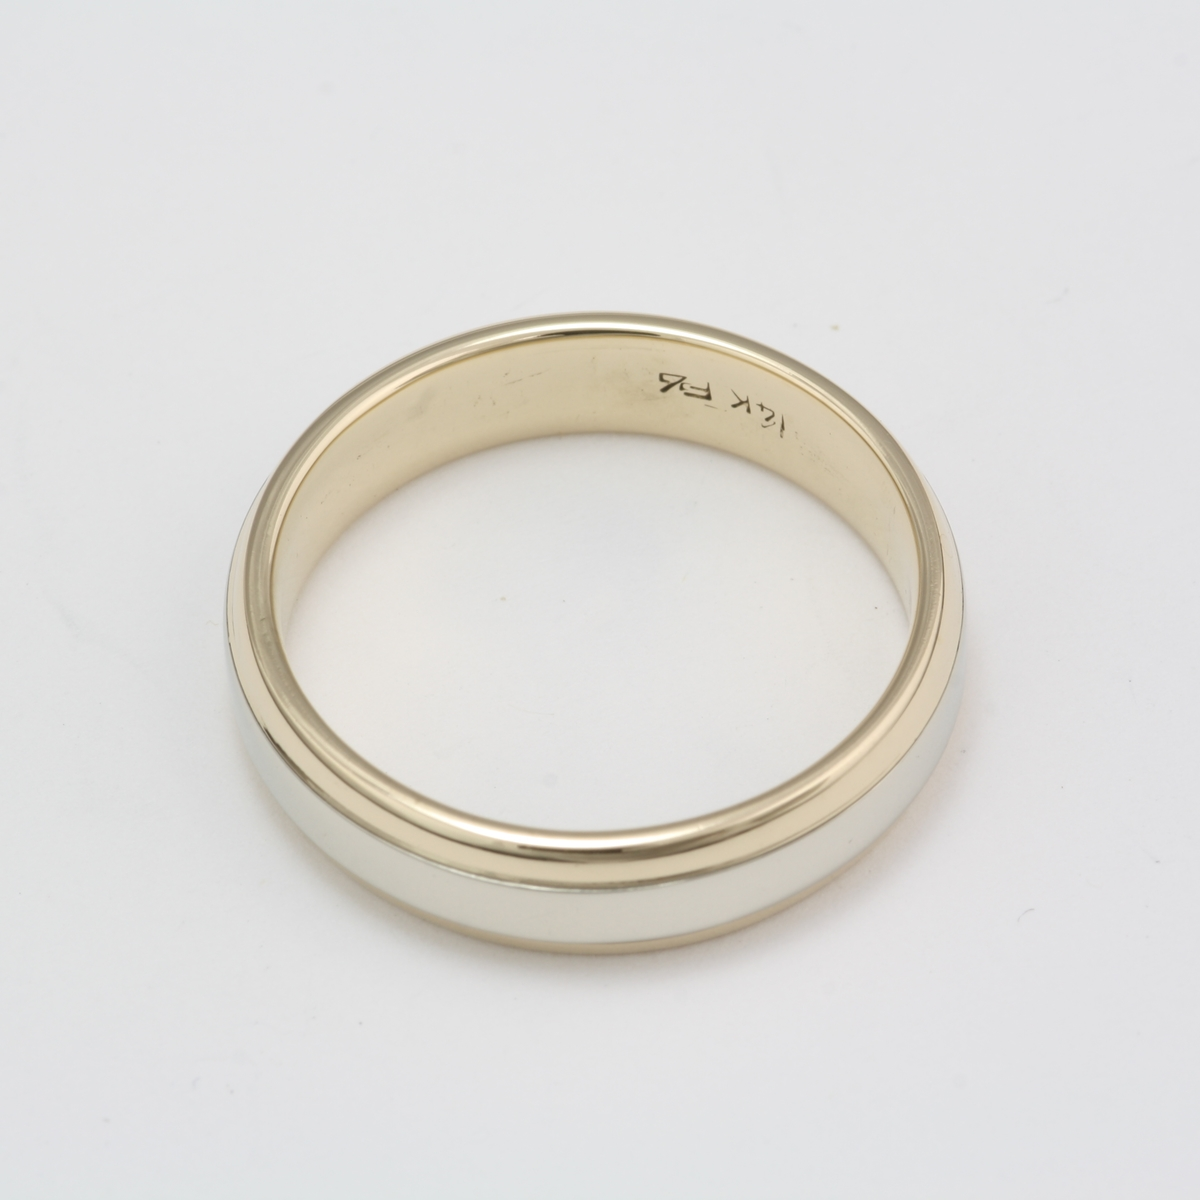 pre owned 14 karat white and yellow gold wedding band